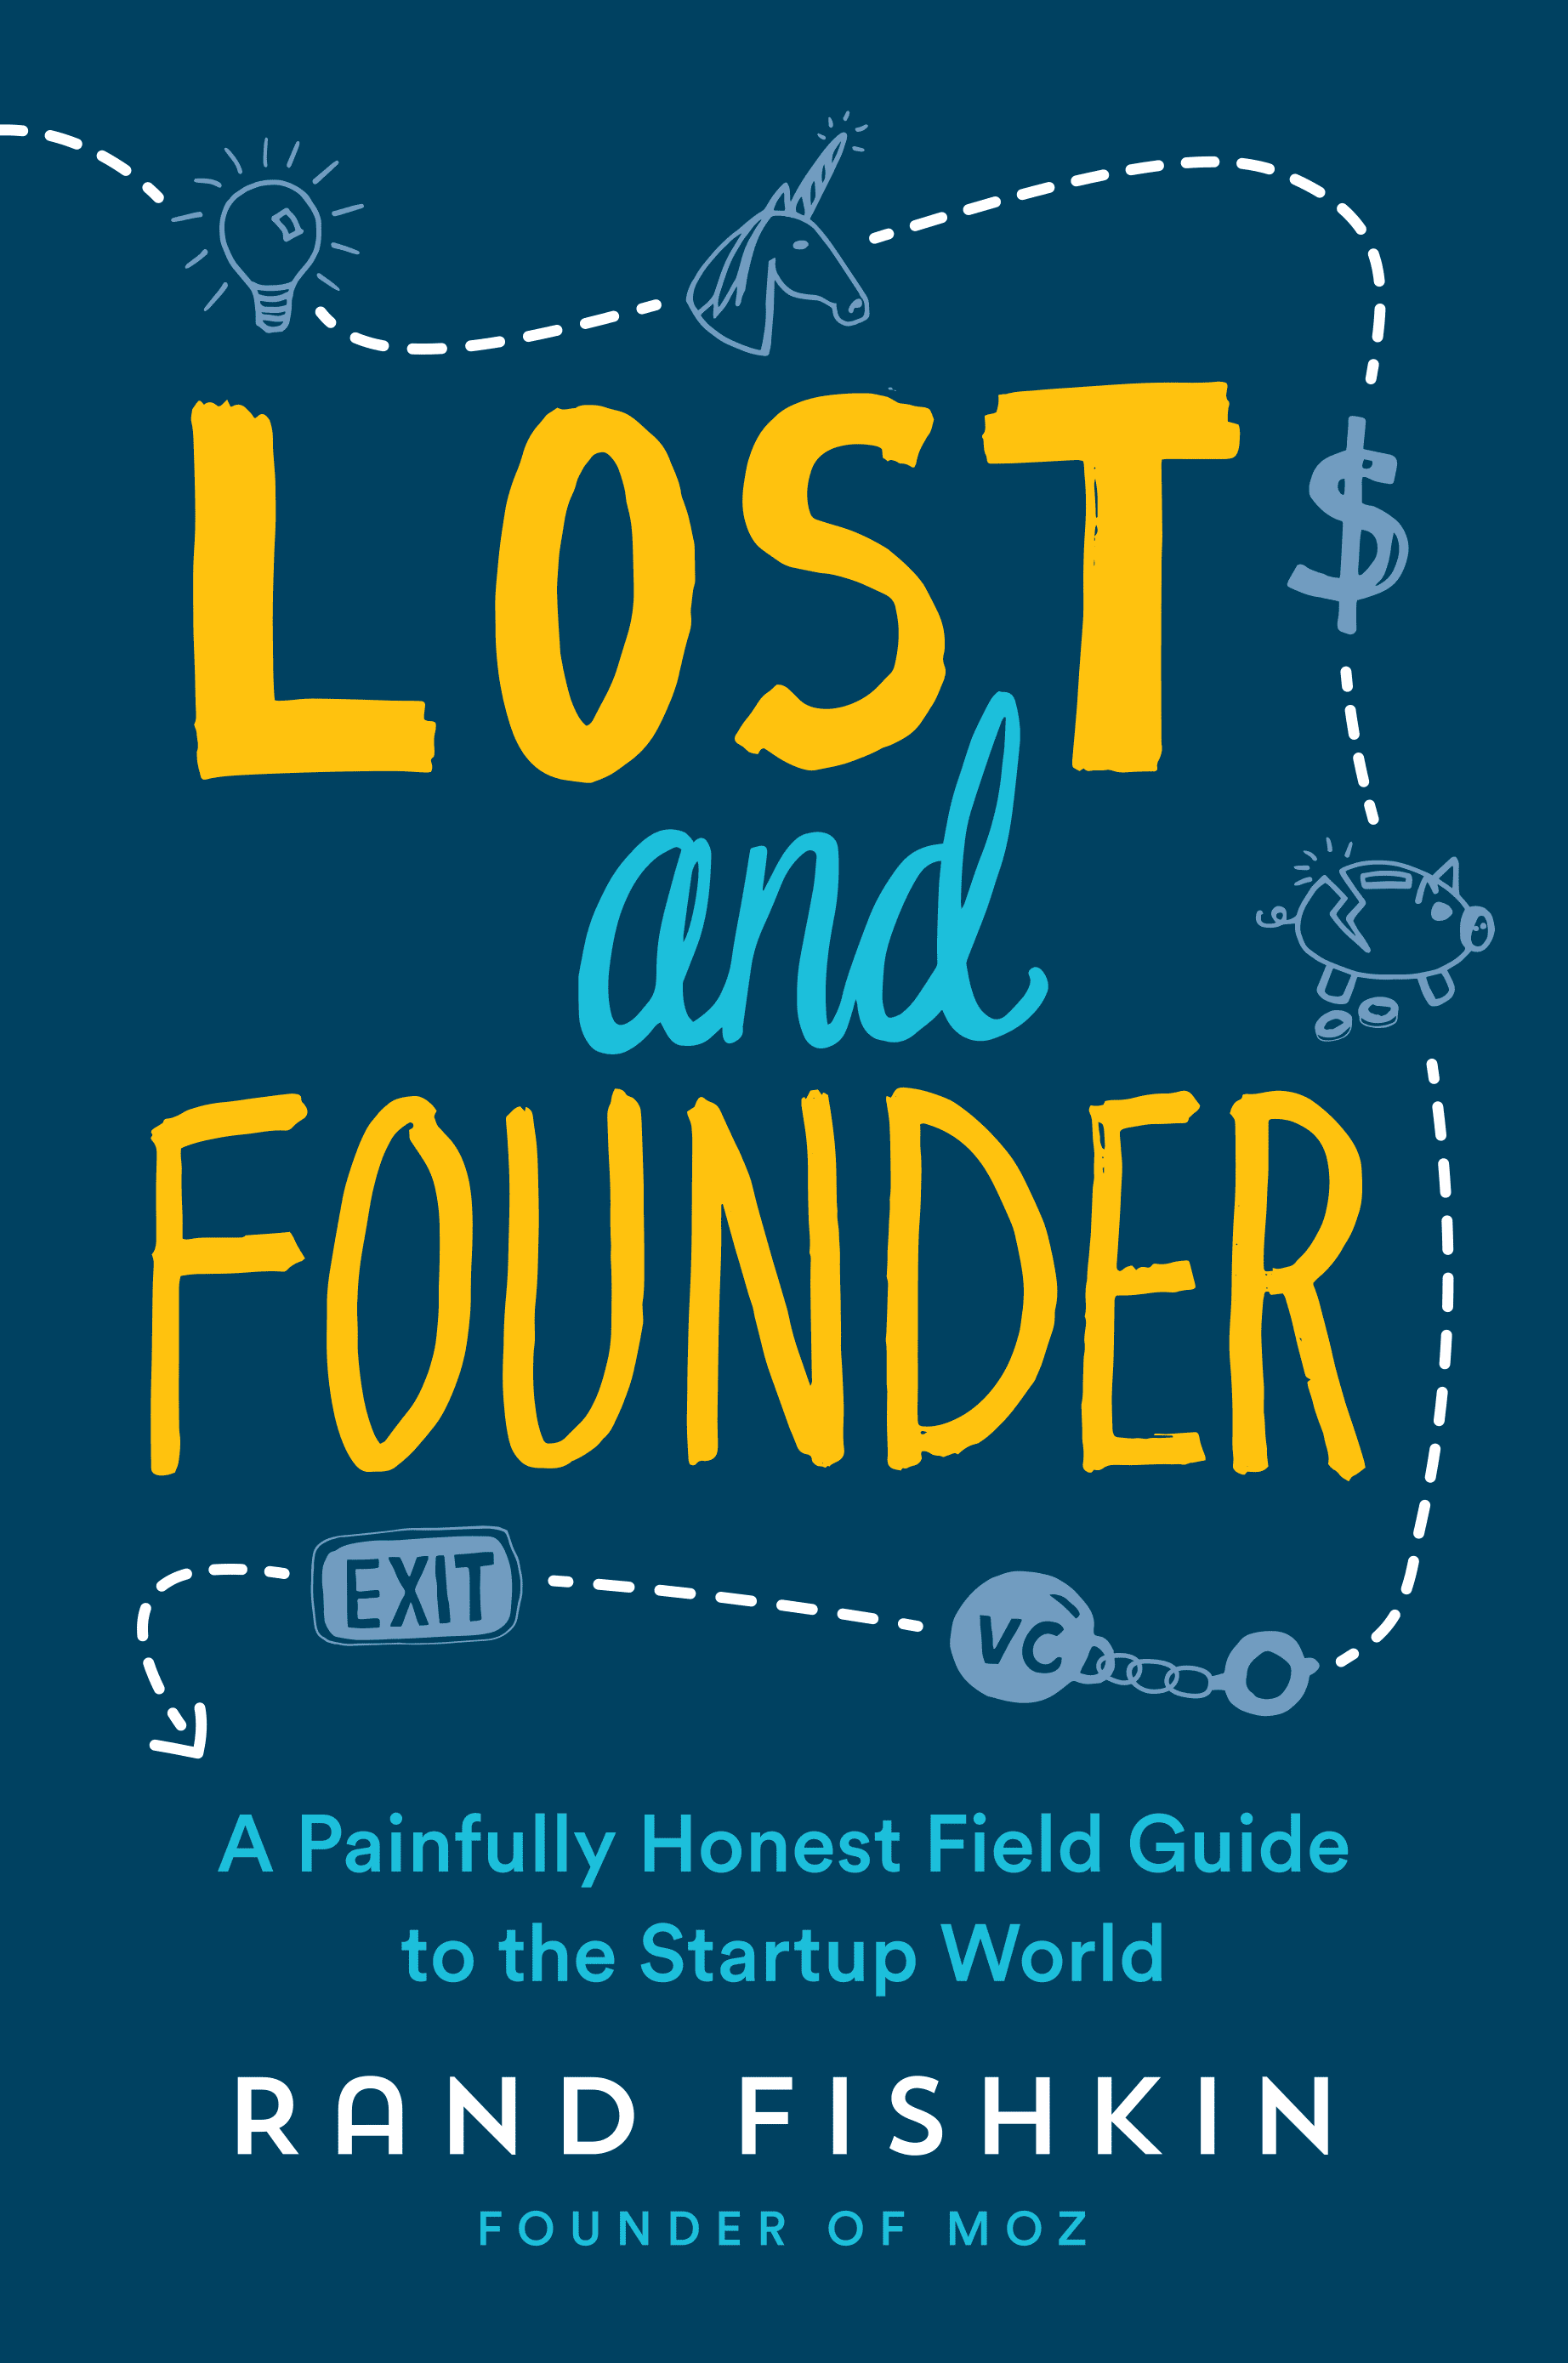 Lost and Founder Rand Fishkin Book